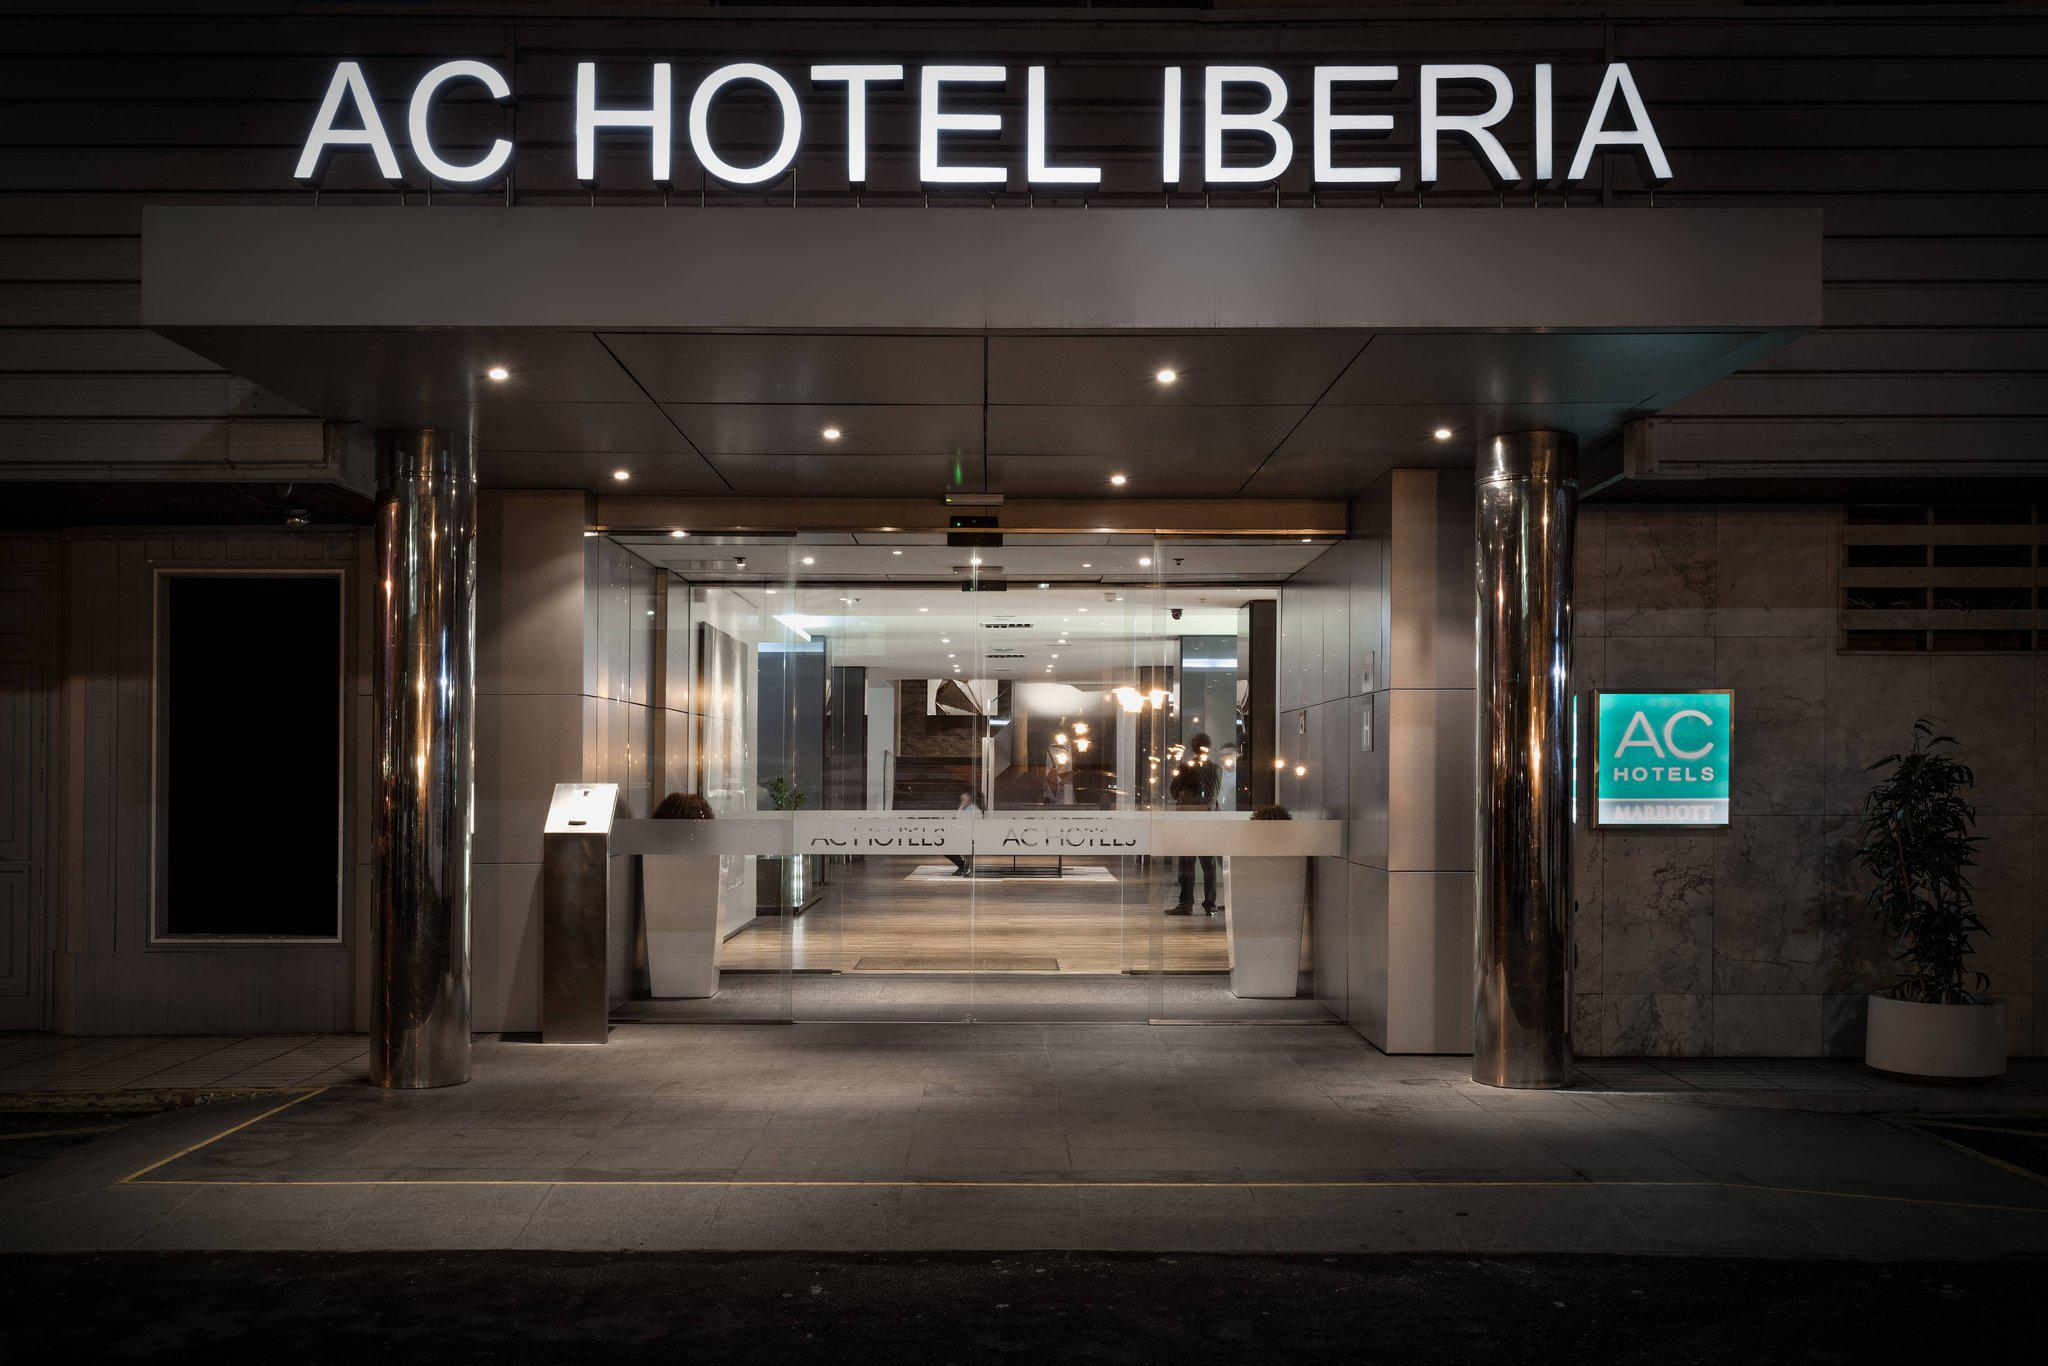 AC Hotel by Marriott Iberia Las Palmas